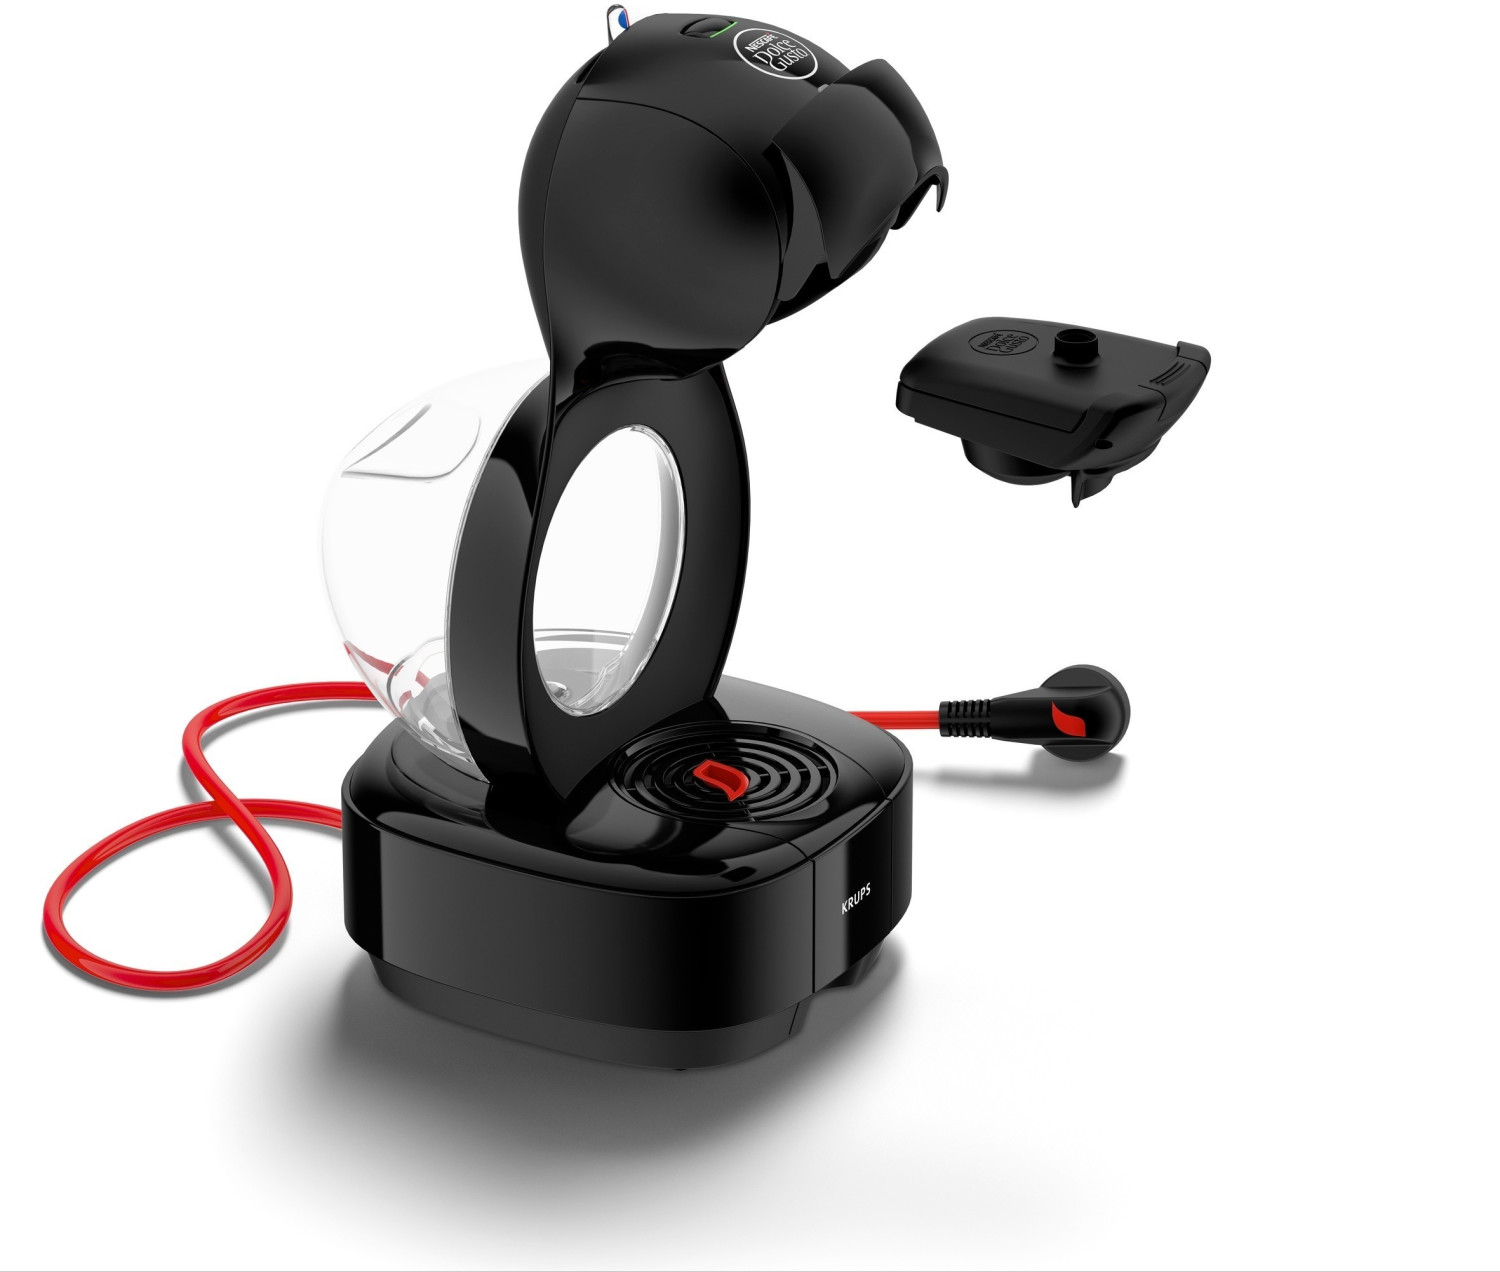 Image of Krups Dolce Gusto Lumio KP13